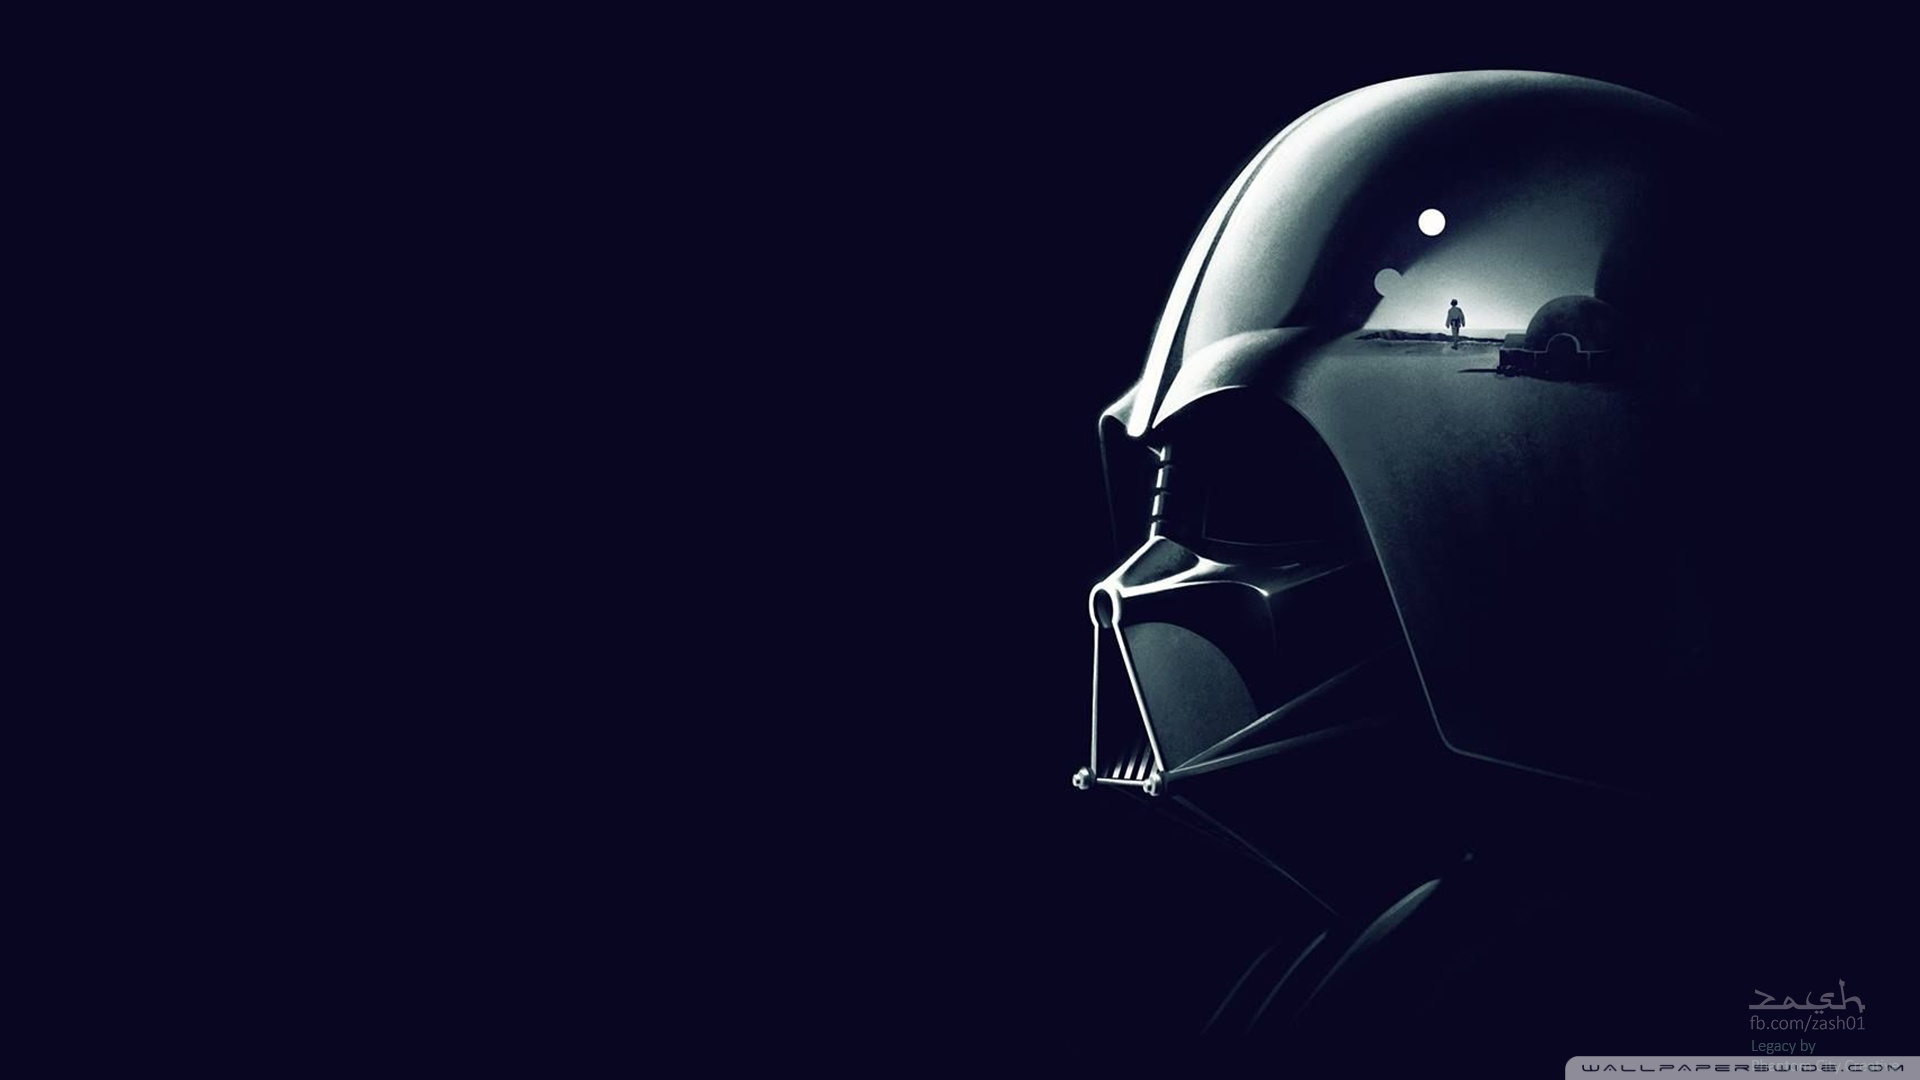 Tags Description Download Star Wars HD Desktop Wallpaper